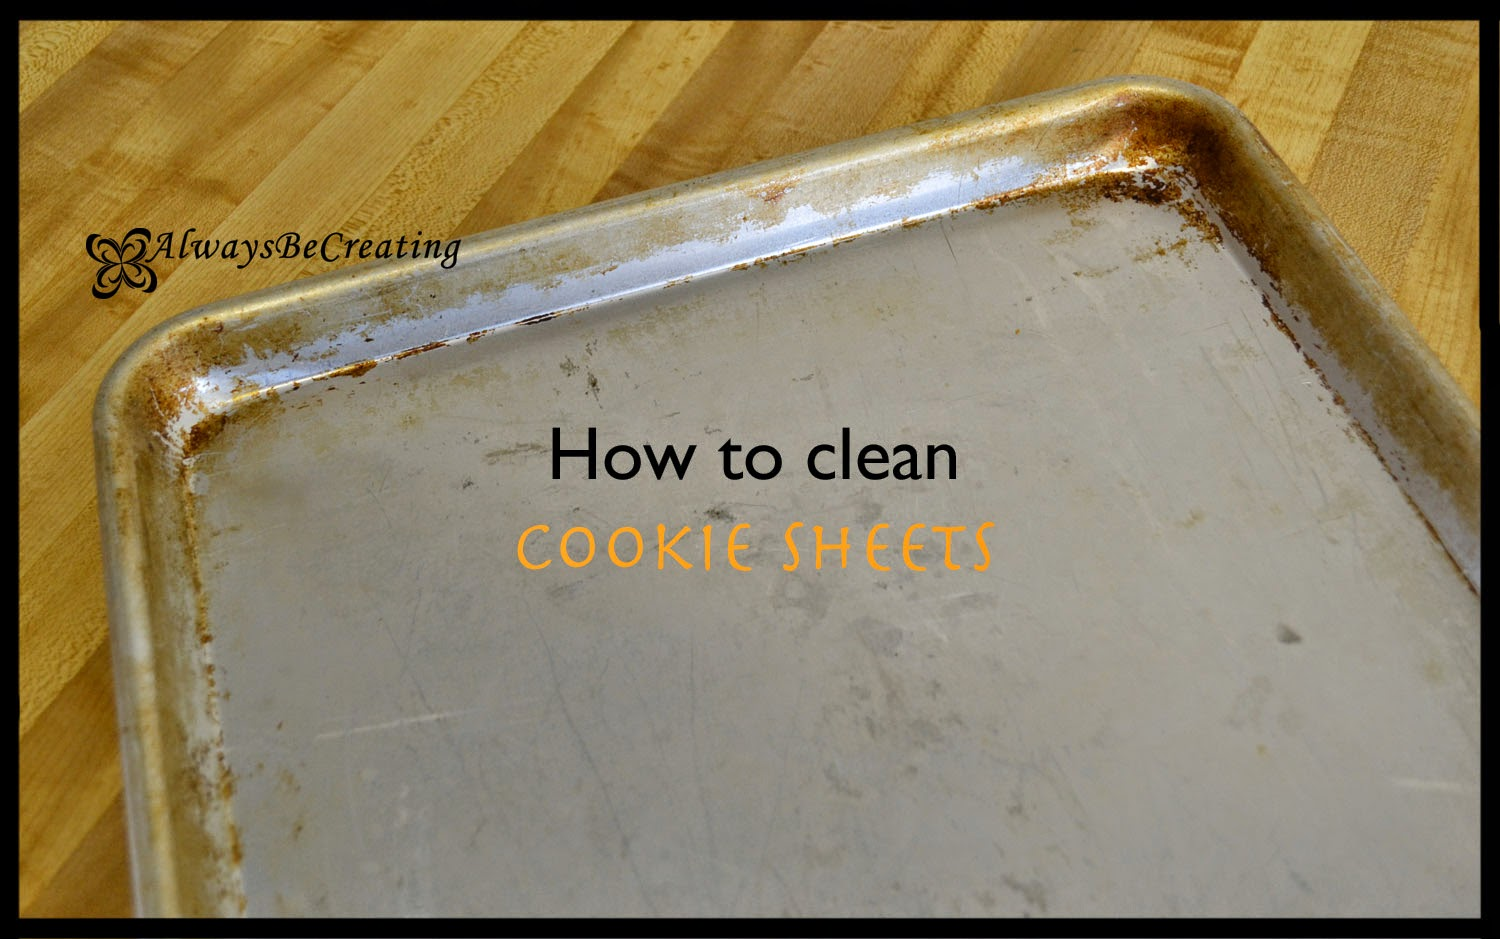 http://49fifty.weebly.com/1/post/2014/03/cleaning-the-gunk-off-of-cookie-sheets.html